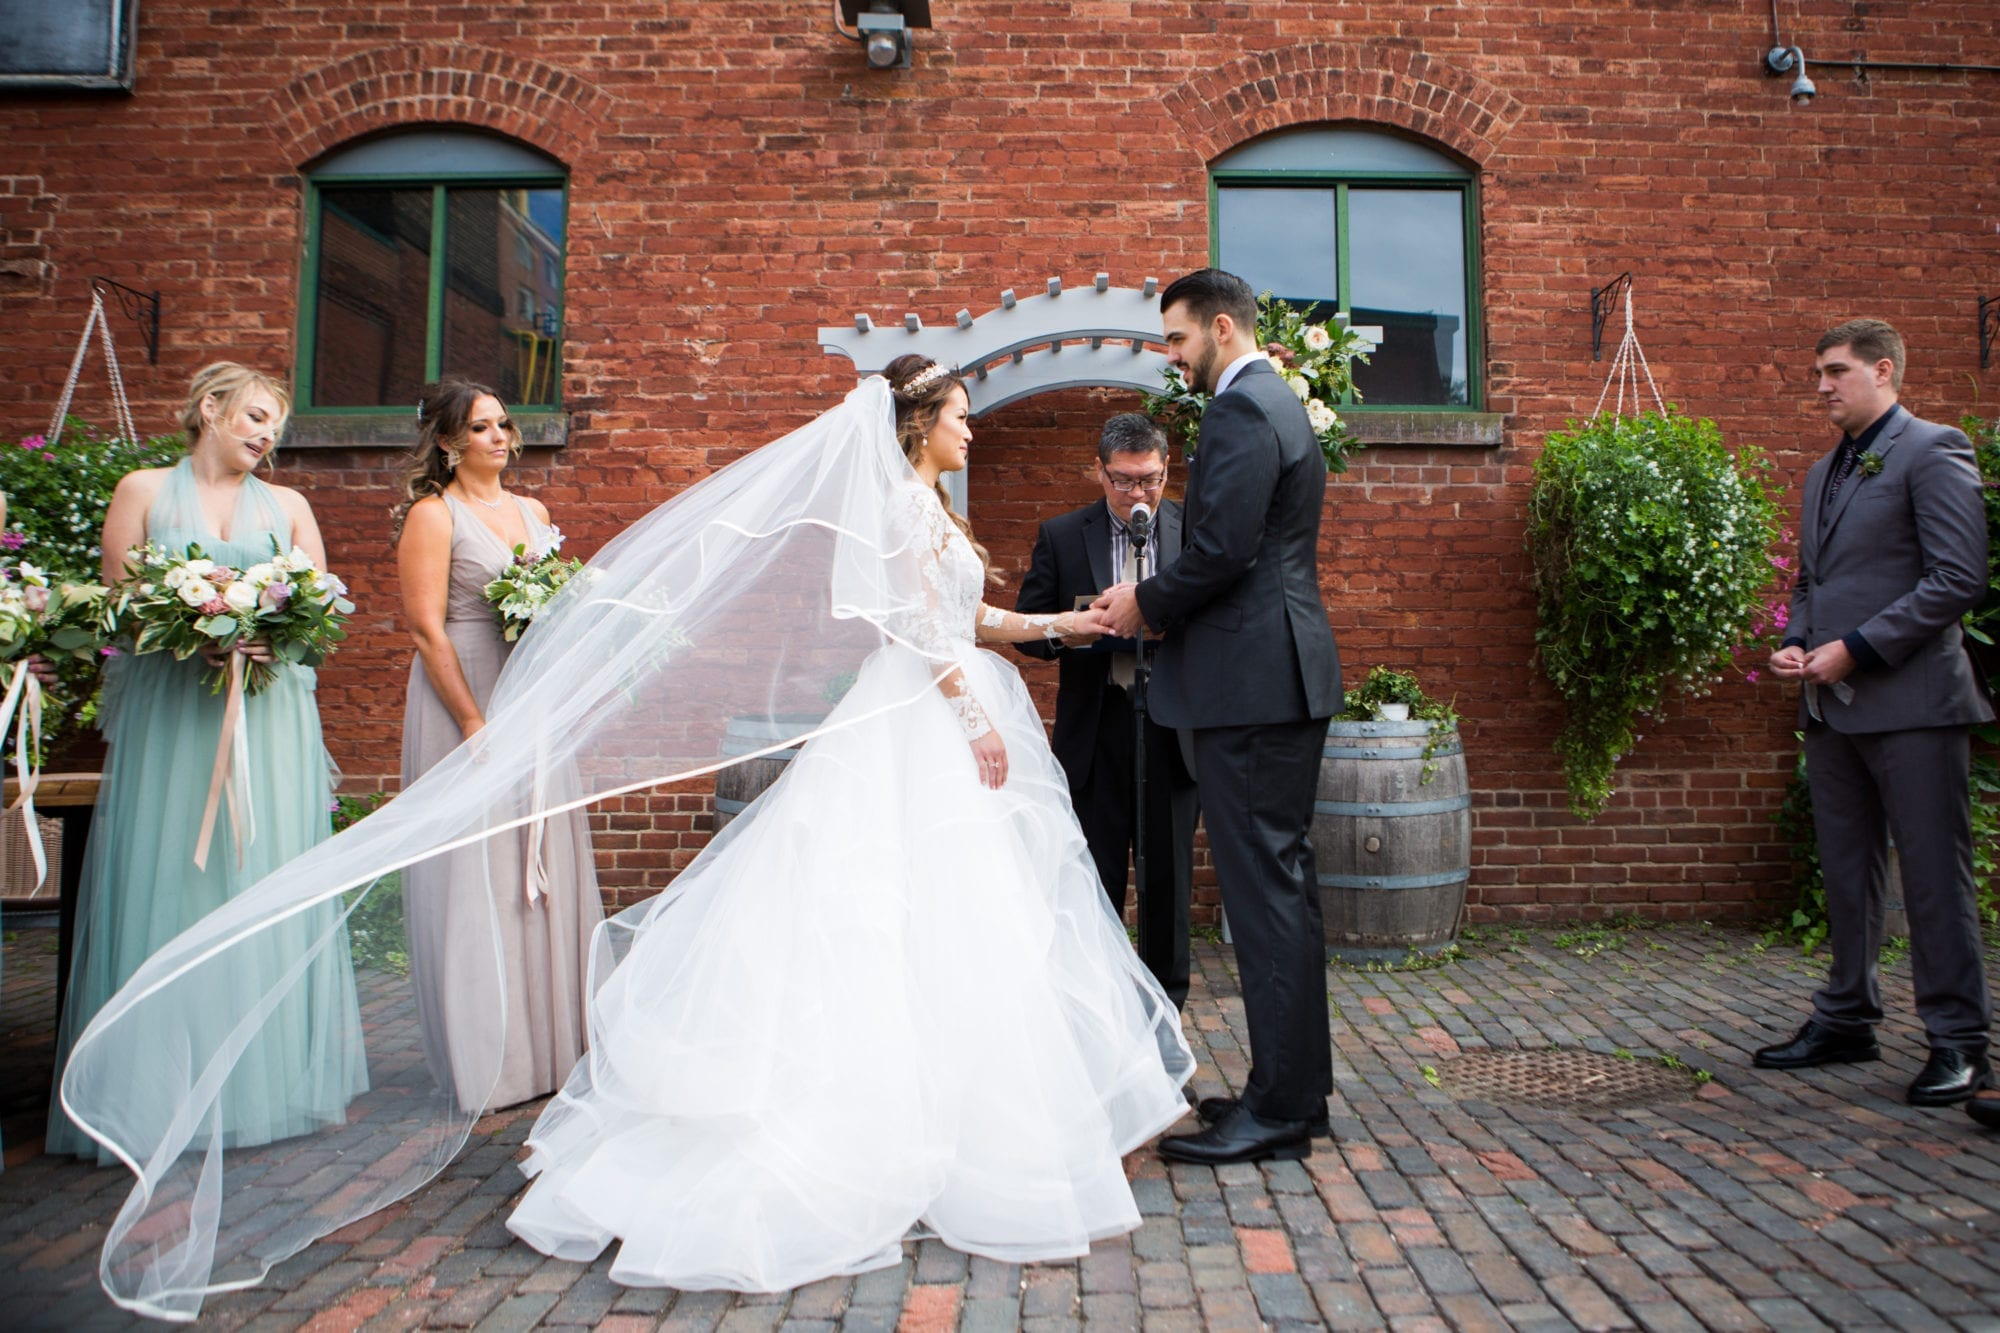 Bride Groom Long Veil Ceremony Toronto Wedding Zsuzsi Pal Photography